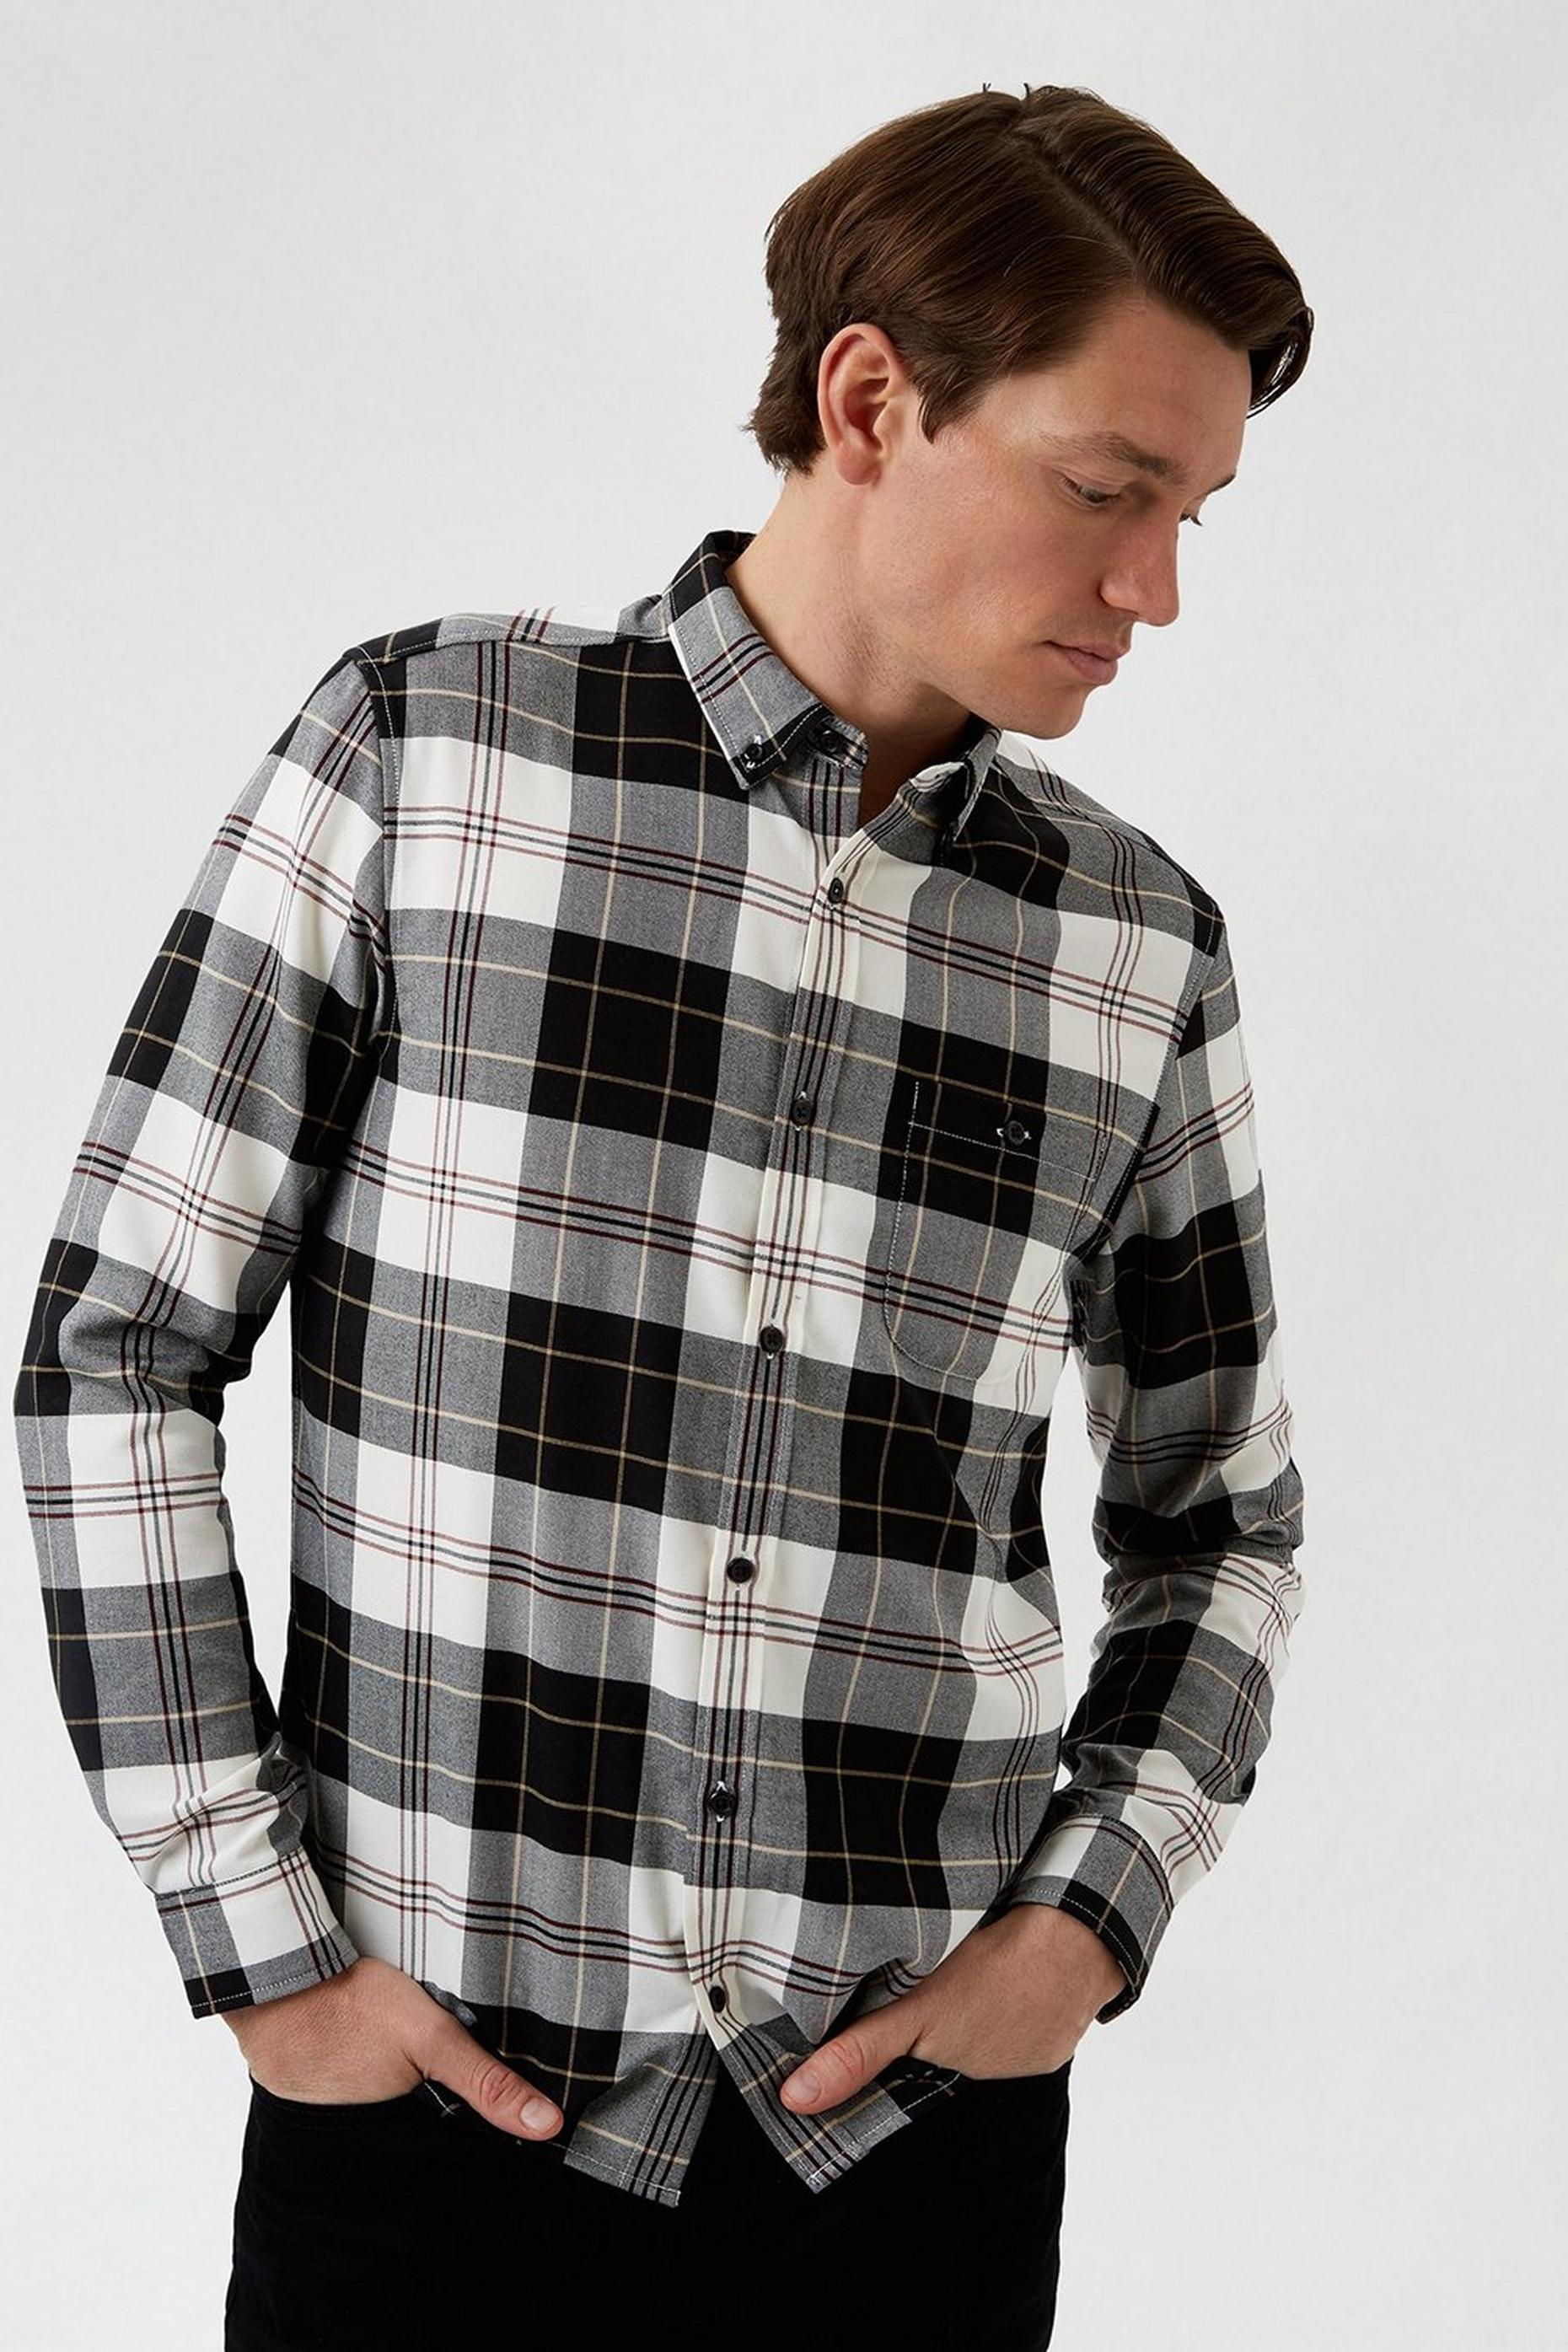 Long Sleeve White Navy Burgundy Check Shirt